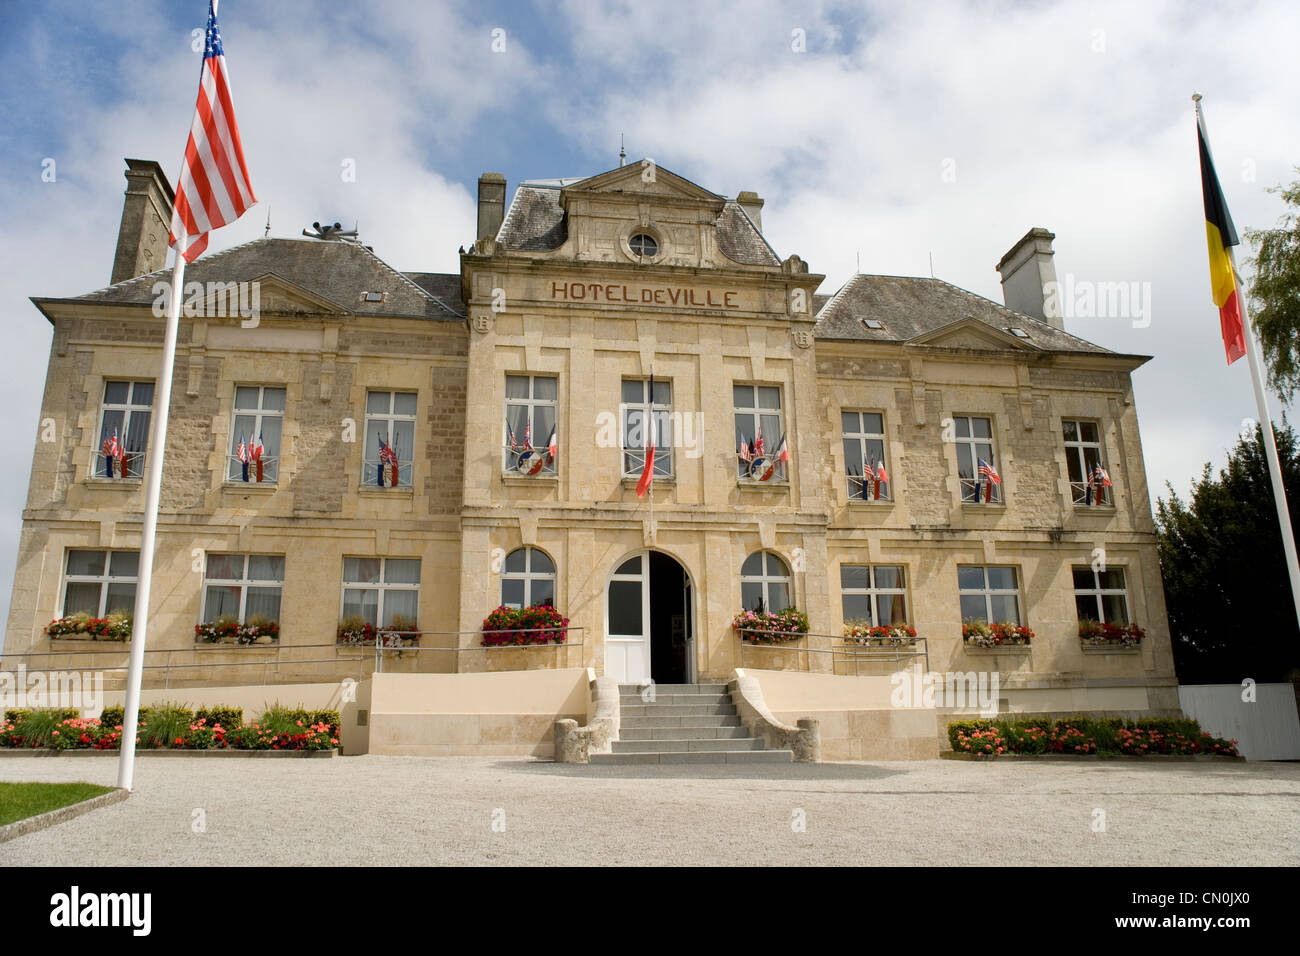 hotel de ville in sainte mere eglise normandy stock photo 47343352 alamy. Black Bedroom Furniture Sets. Home Design Ideas